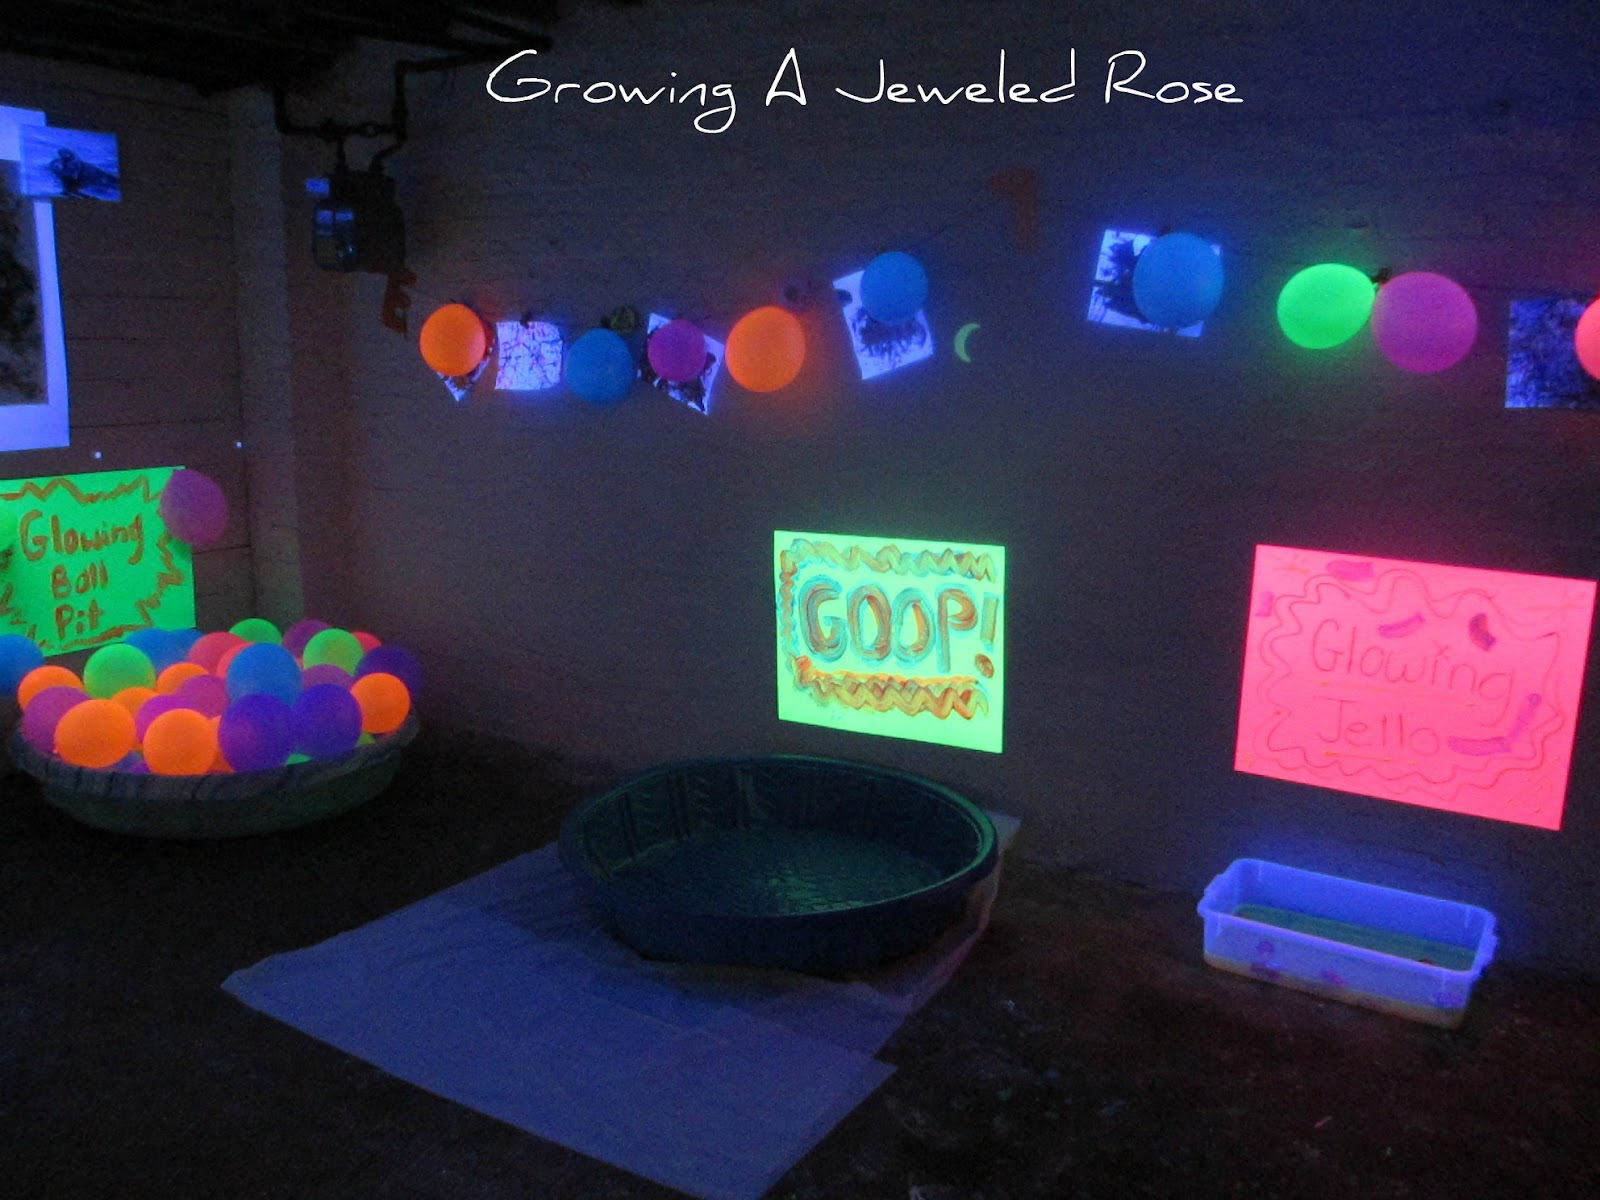 Space Themed Lamp Black Light Themed Party For Kids Growing A Jeweled Rose